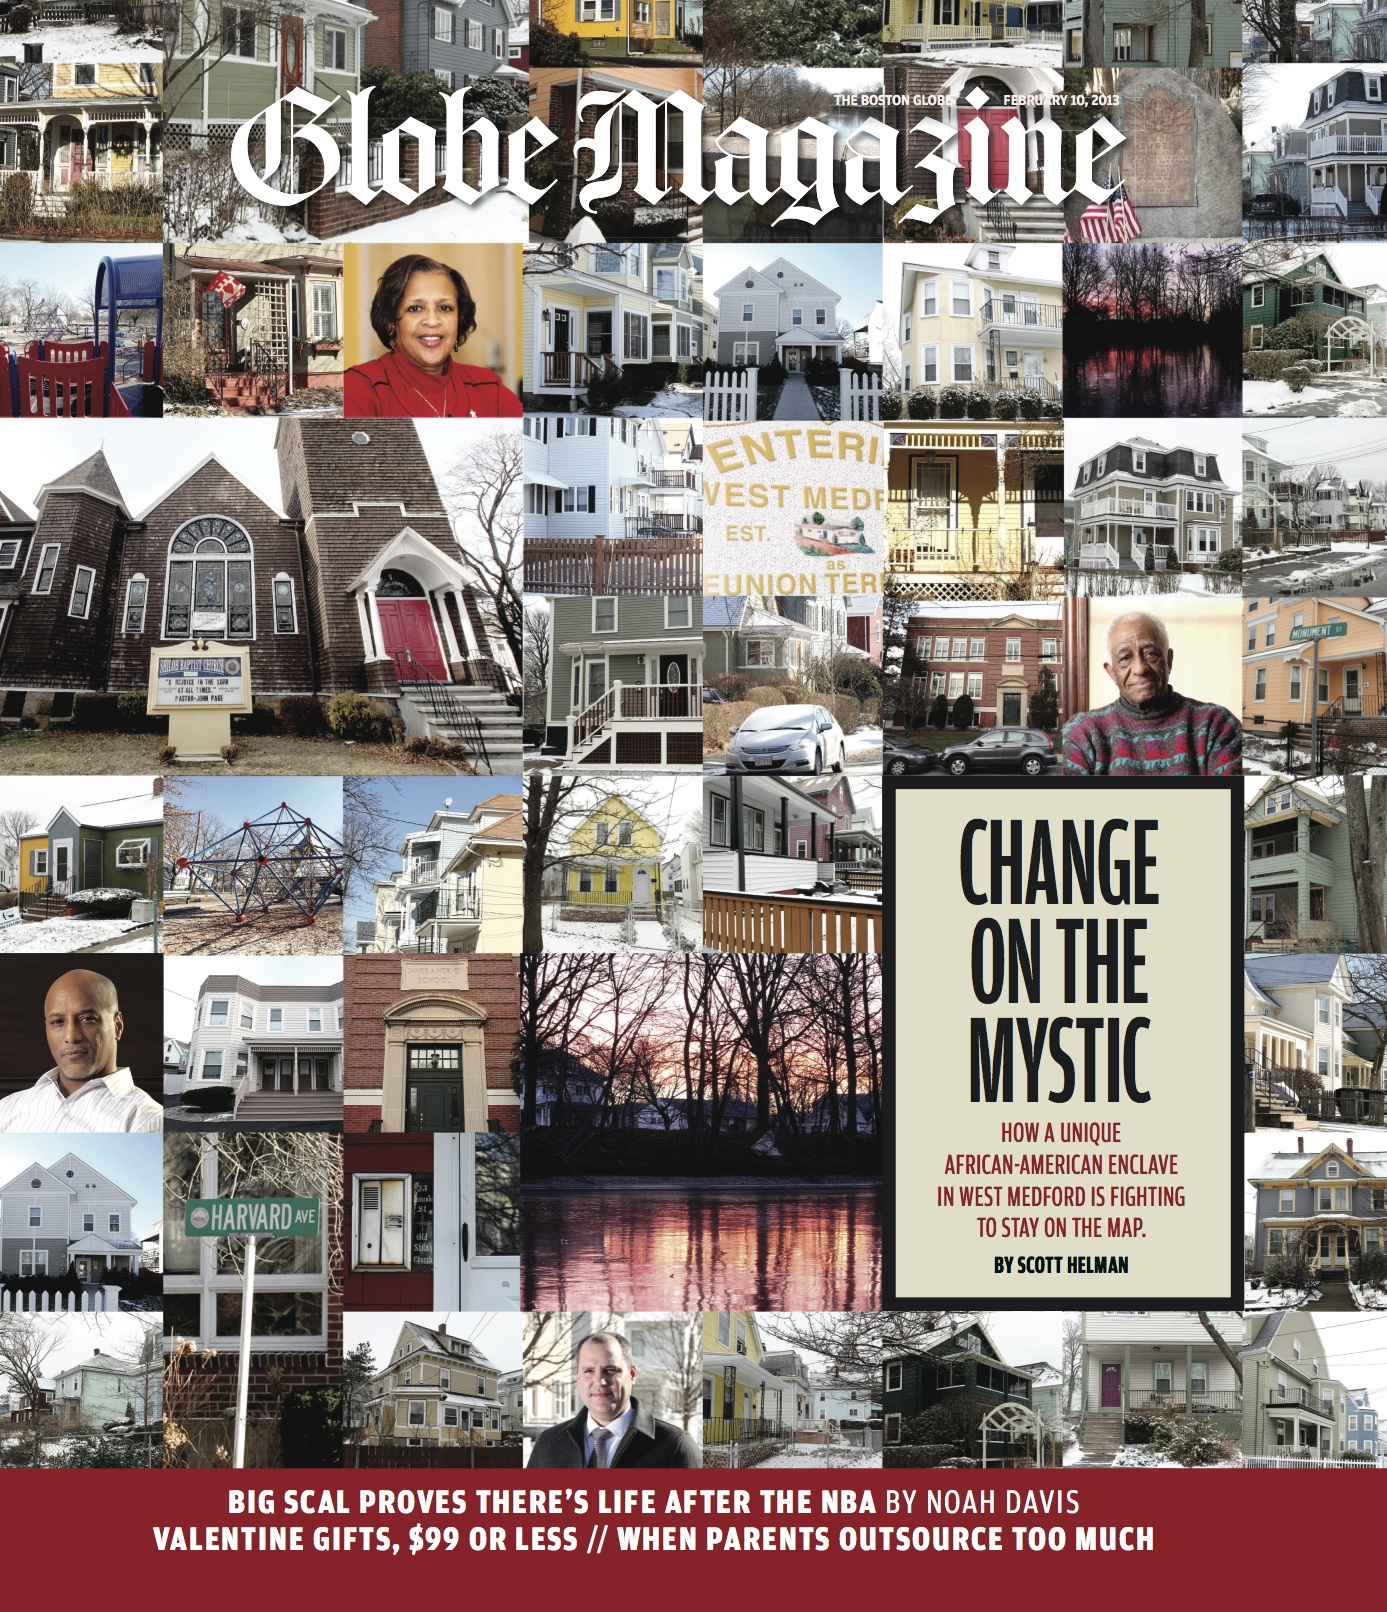 Change on the Mystic  | An African-American enclave of self-sufficiency and high ambition fights for survival. (February 2012)